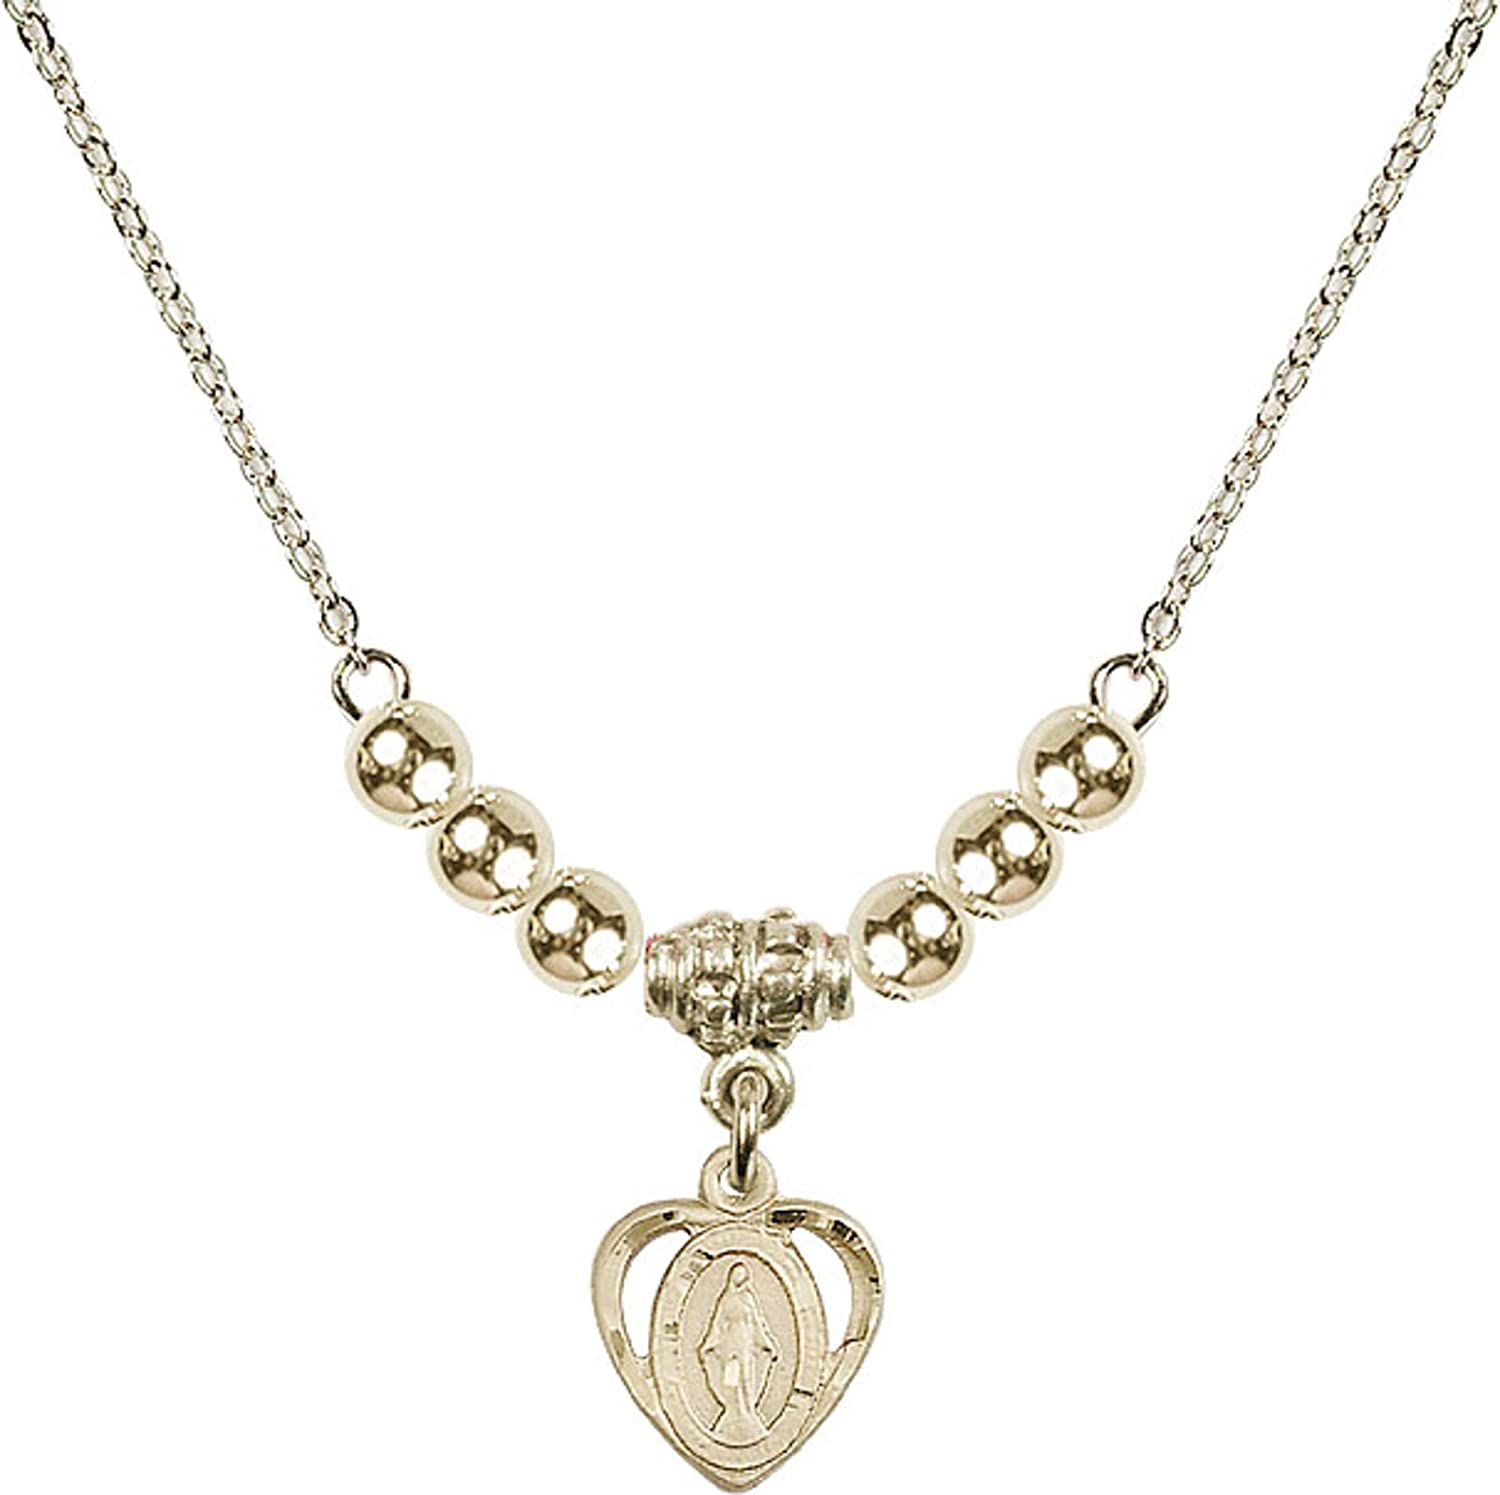 Bonyak Jewelry 18 Inch Hamilton Gold Plated Necklace w// 4mm Gold Filled Beads and Miraculous Charm